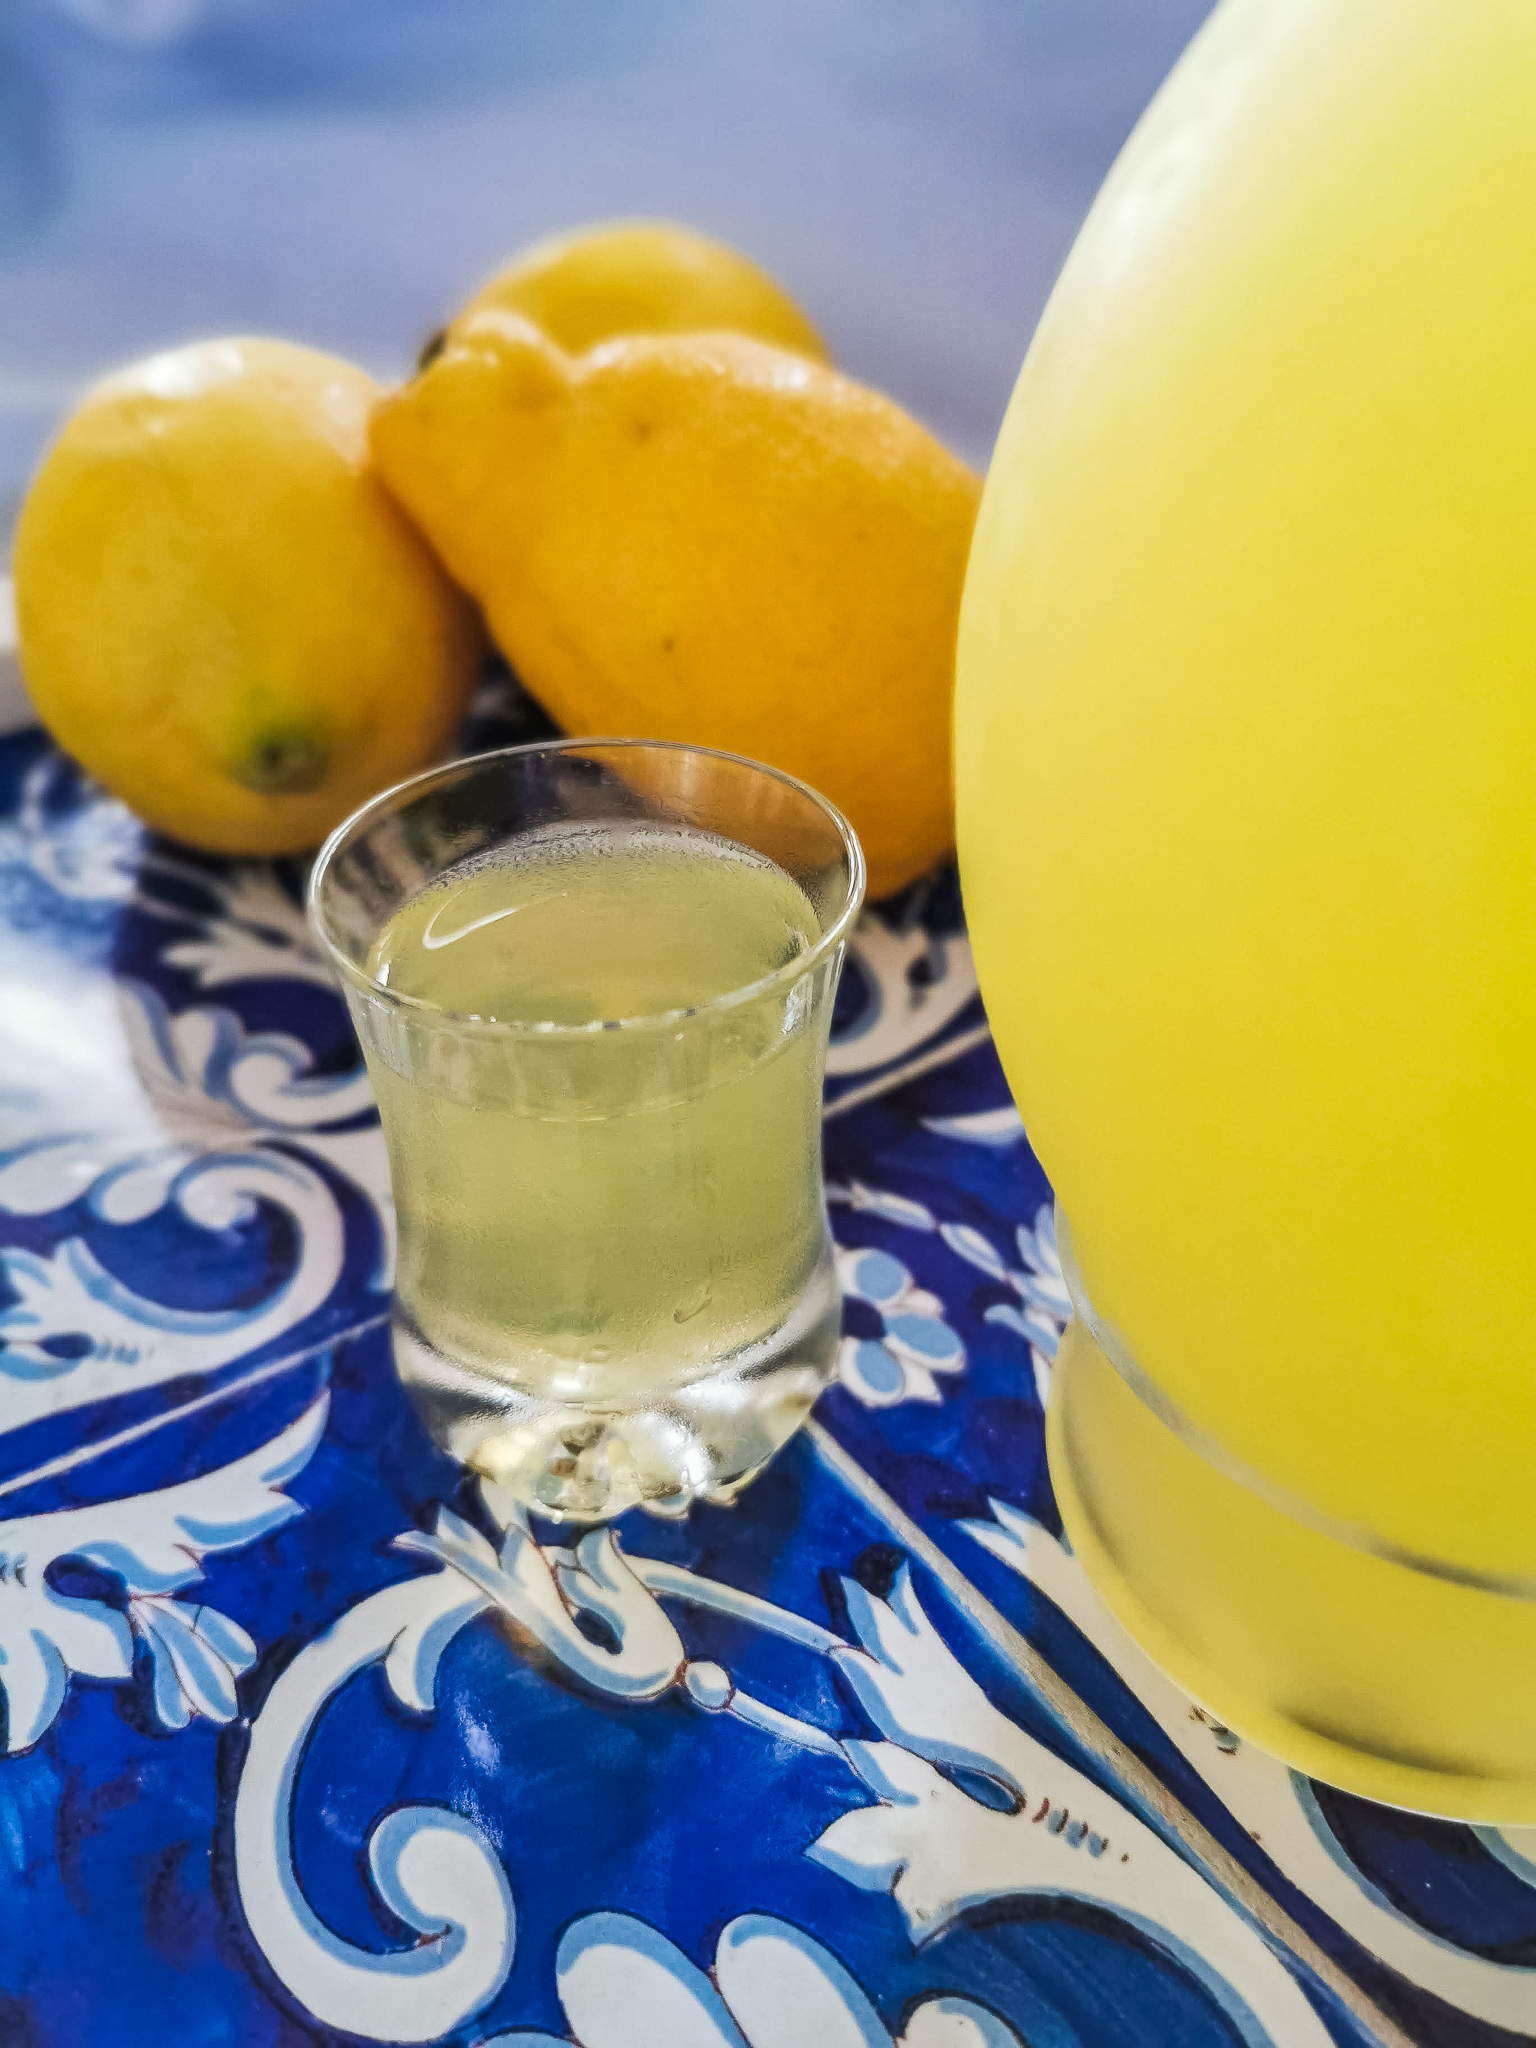 A bottle of homemade limoncello on a white and bue tray with a small glass filled with lemon liqueur and three lemons